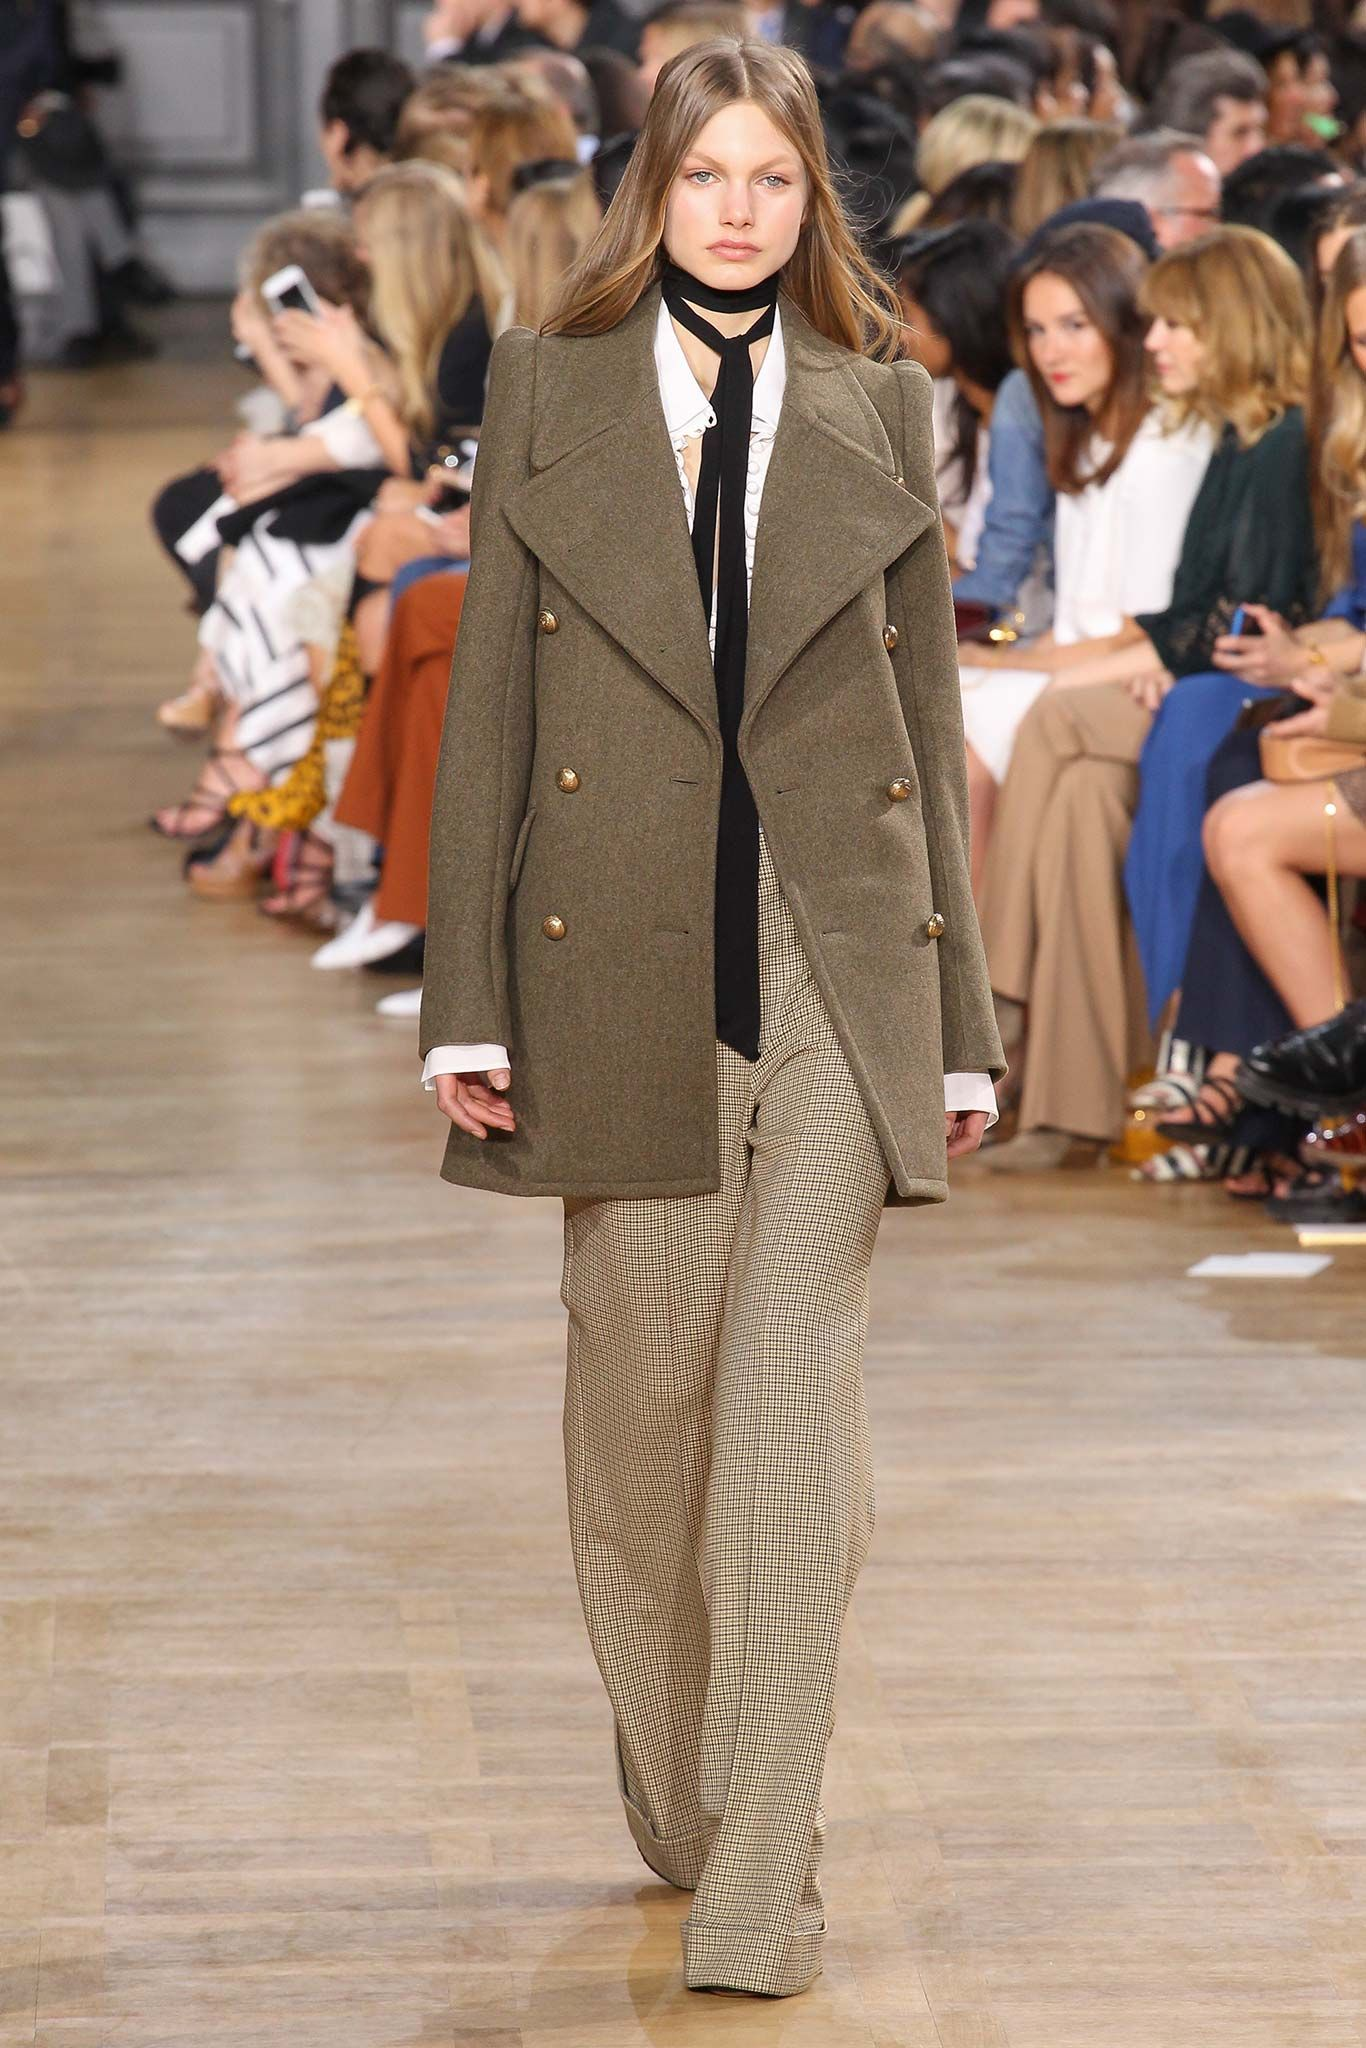 yes retro suit. Chloé Fall 2015 RTW Collection - Style.com. Long live fashion: LÜR Nail presents the best designer runway looks of the Paris Autumn/Winter 2015 Collections.